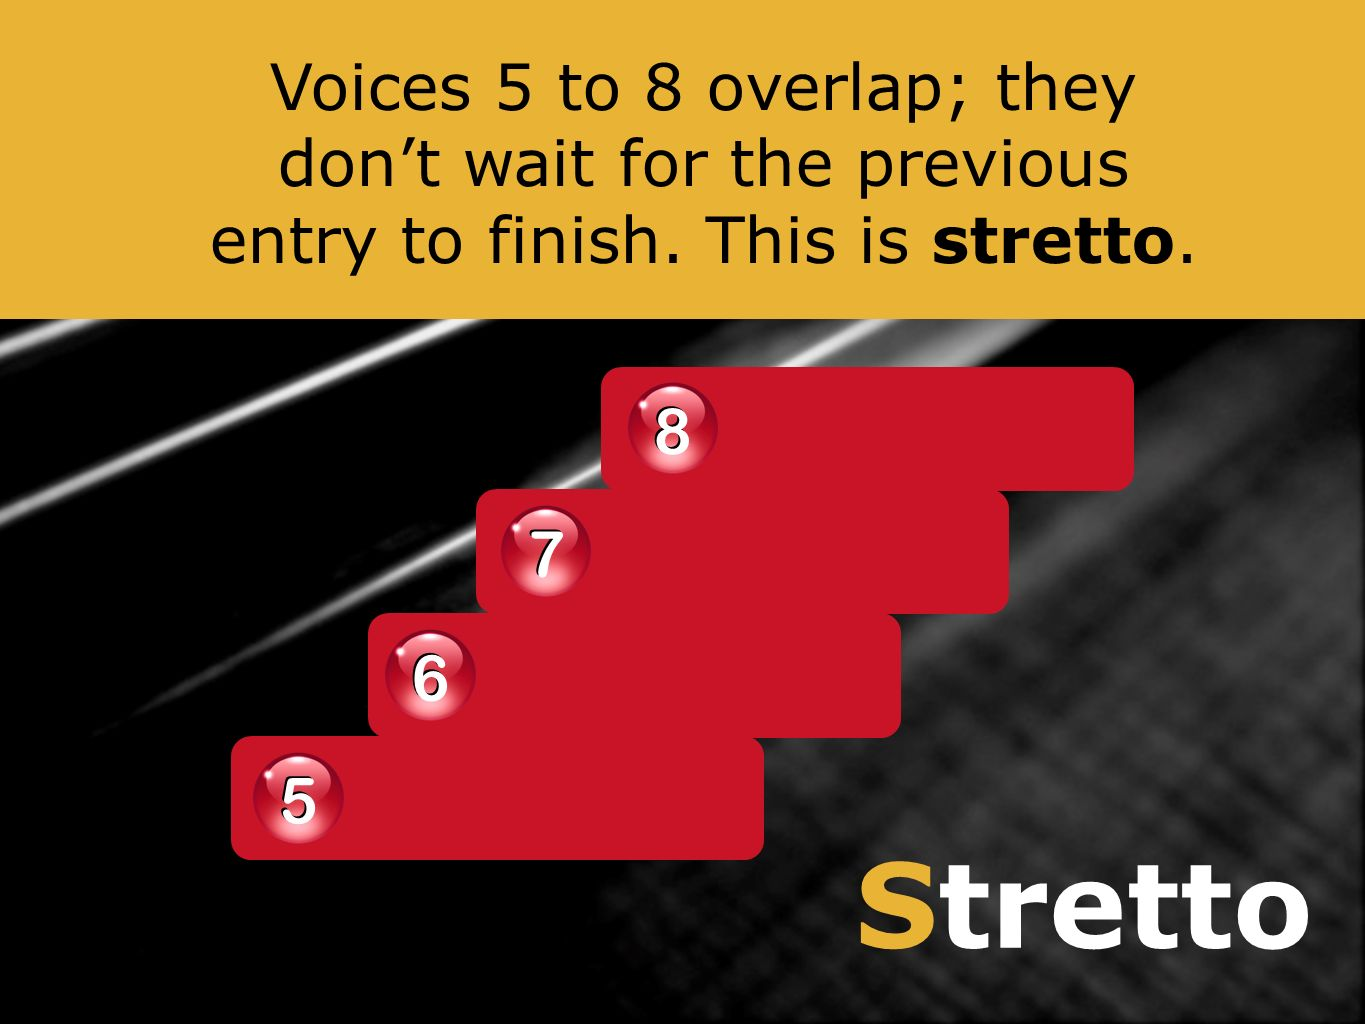 Stretto 8 8 7 7 6 6 5 5 Voices 5 to 8 overlap; they dont wait for the previous entry to finish. This is stretto.